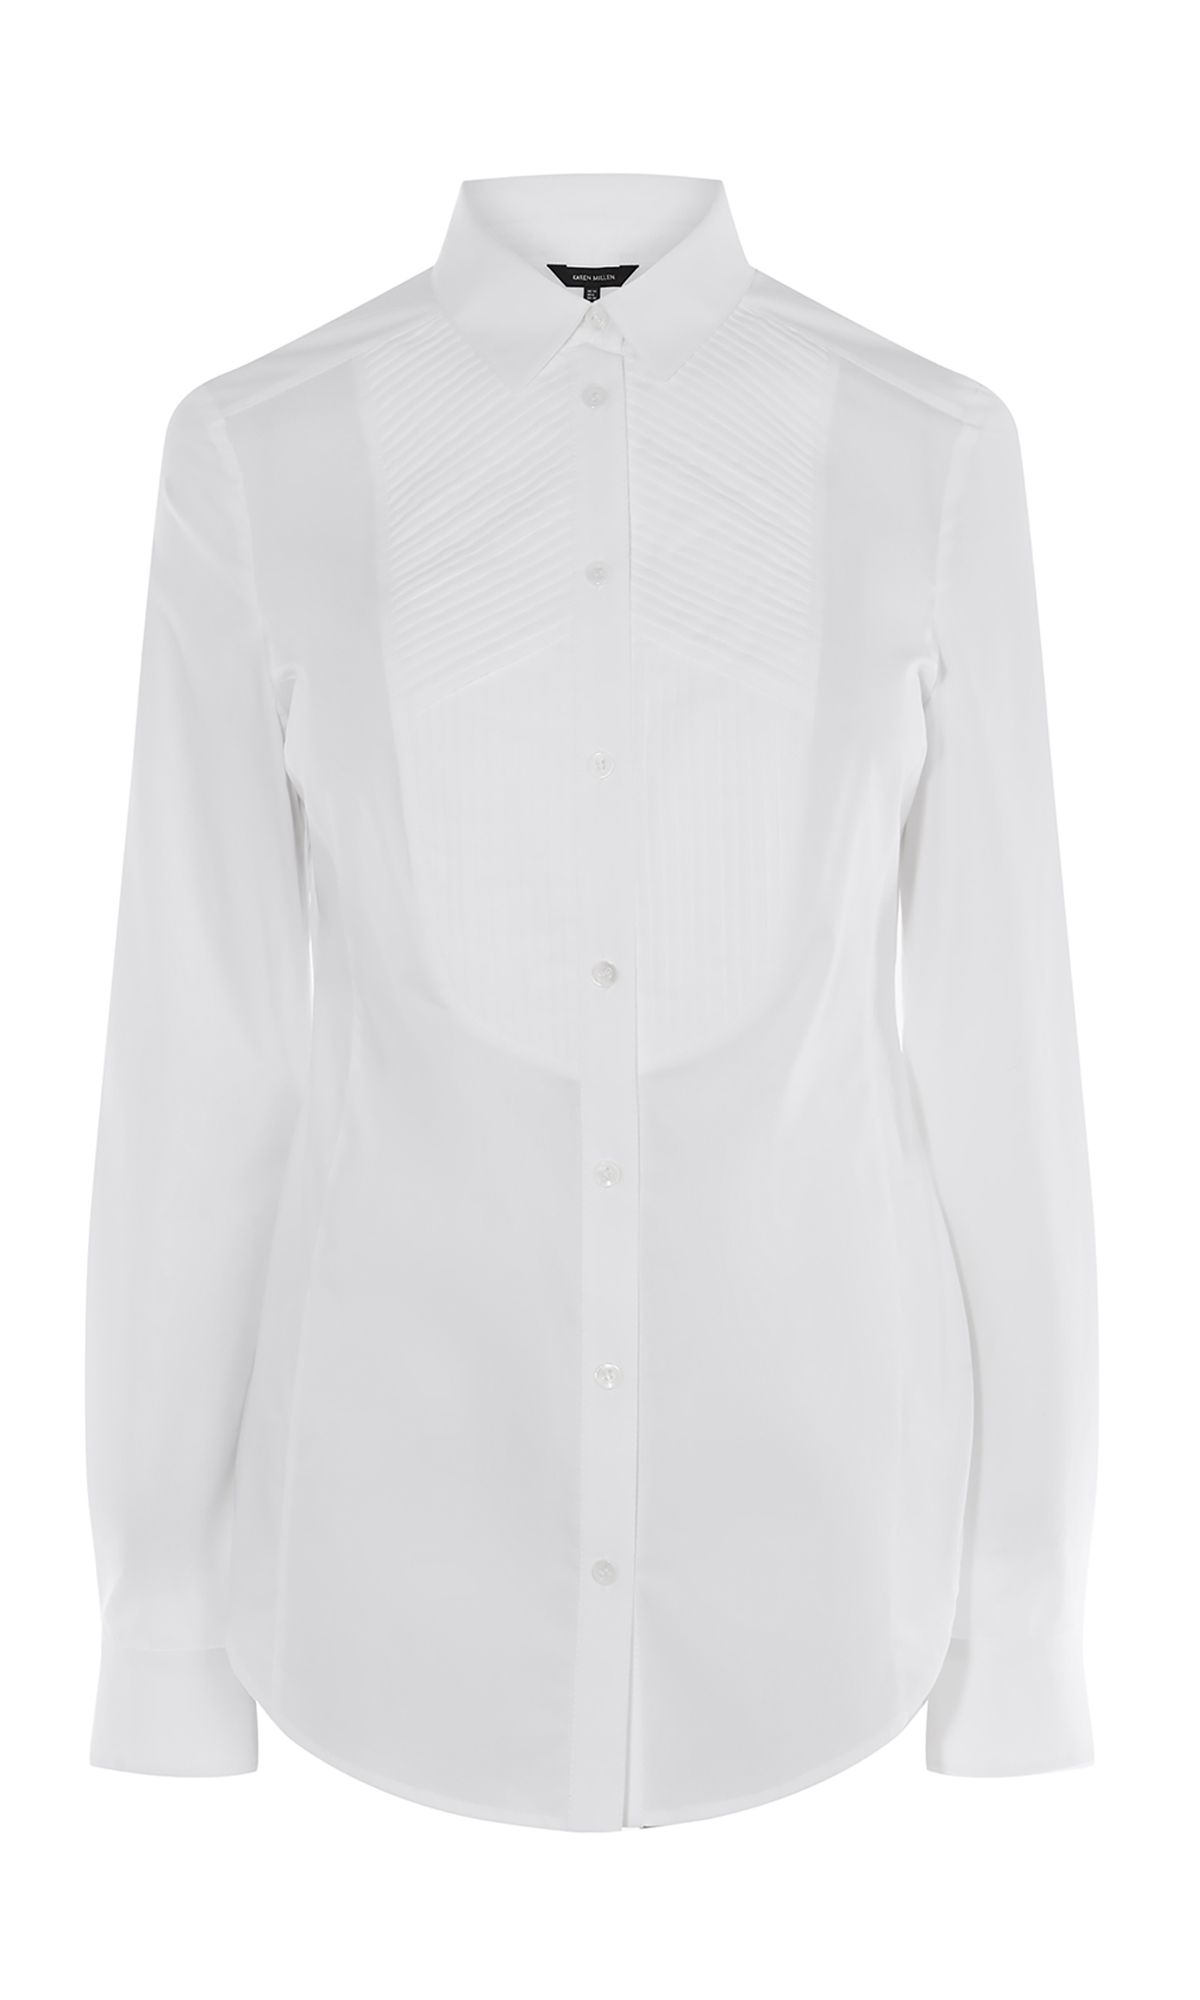 Karen Millen Long Sleeve Shirt, White